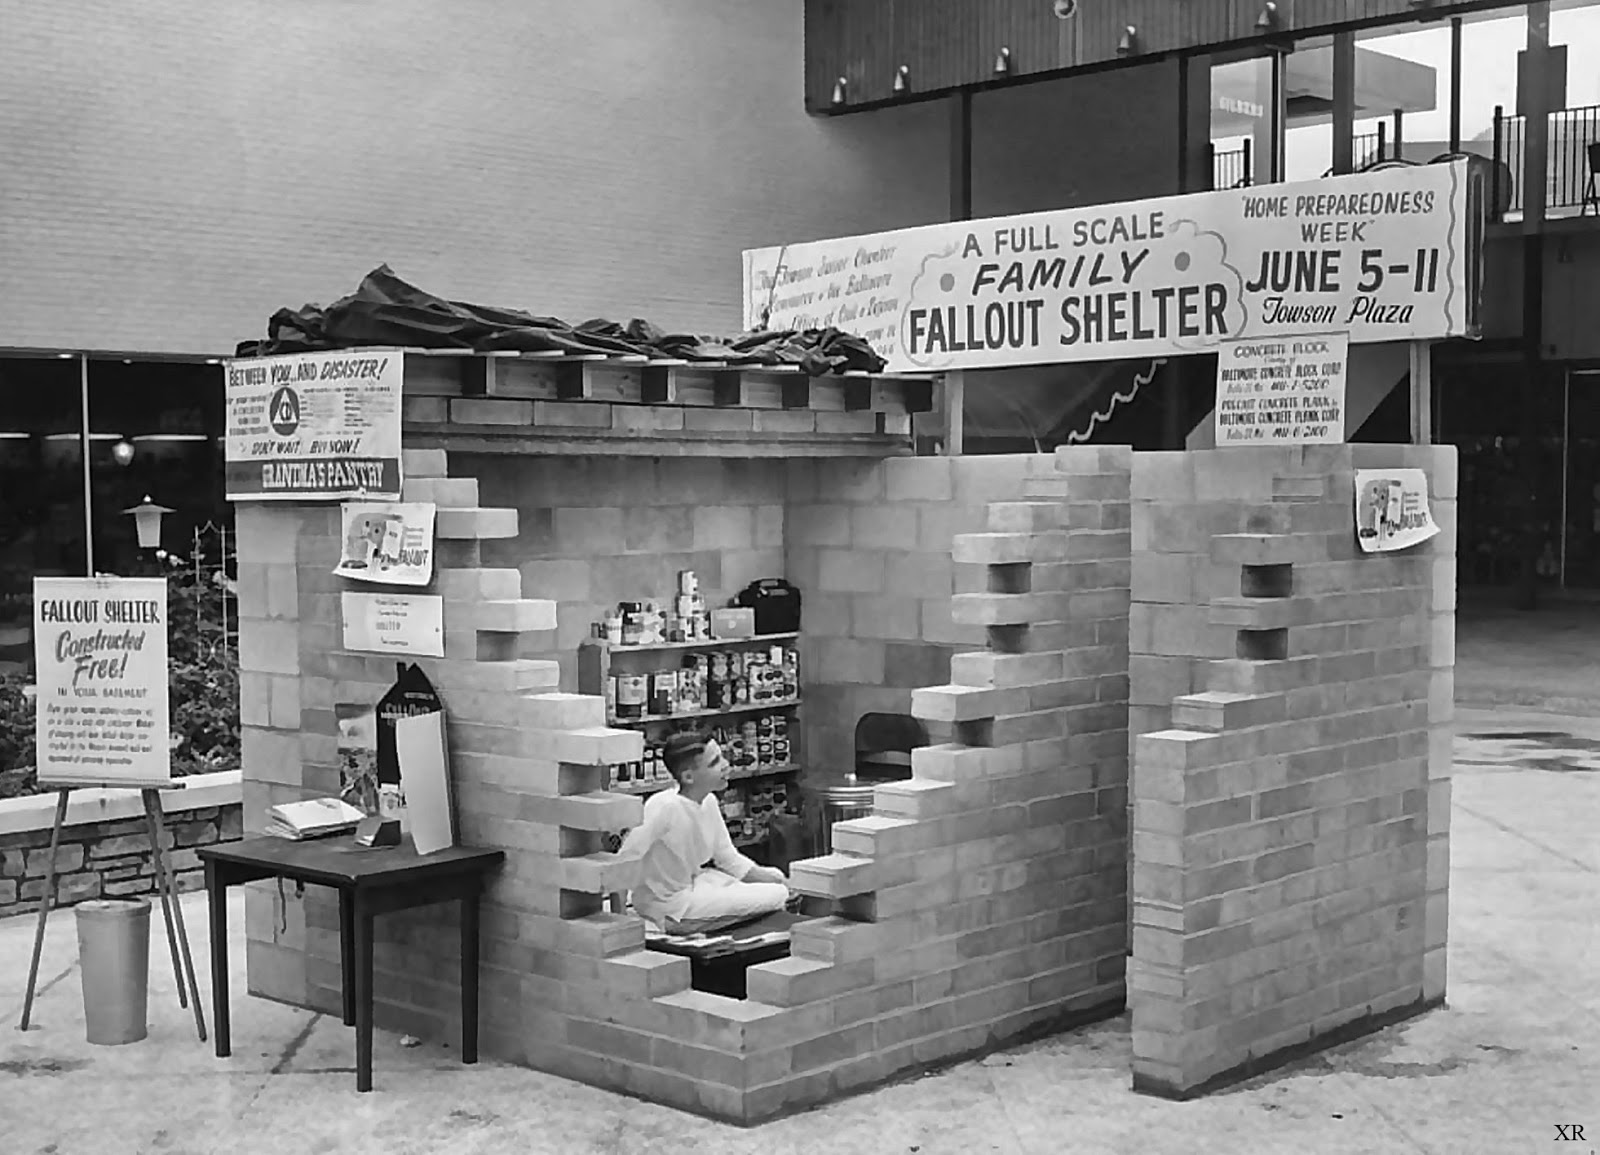 ATOMIC ANNIHILATION 1960 Fallout Shelter Display